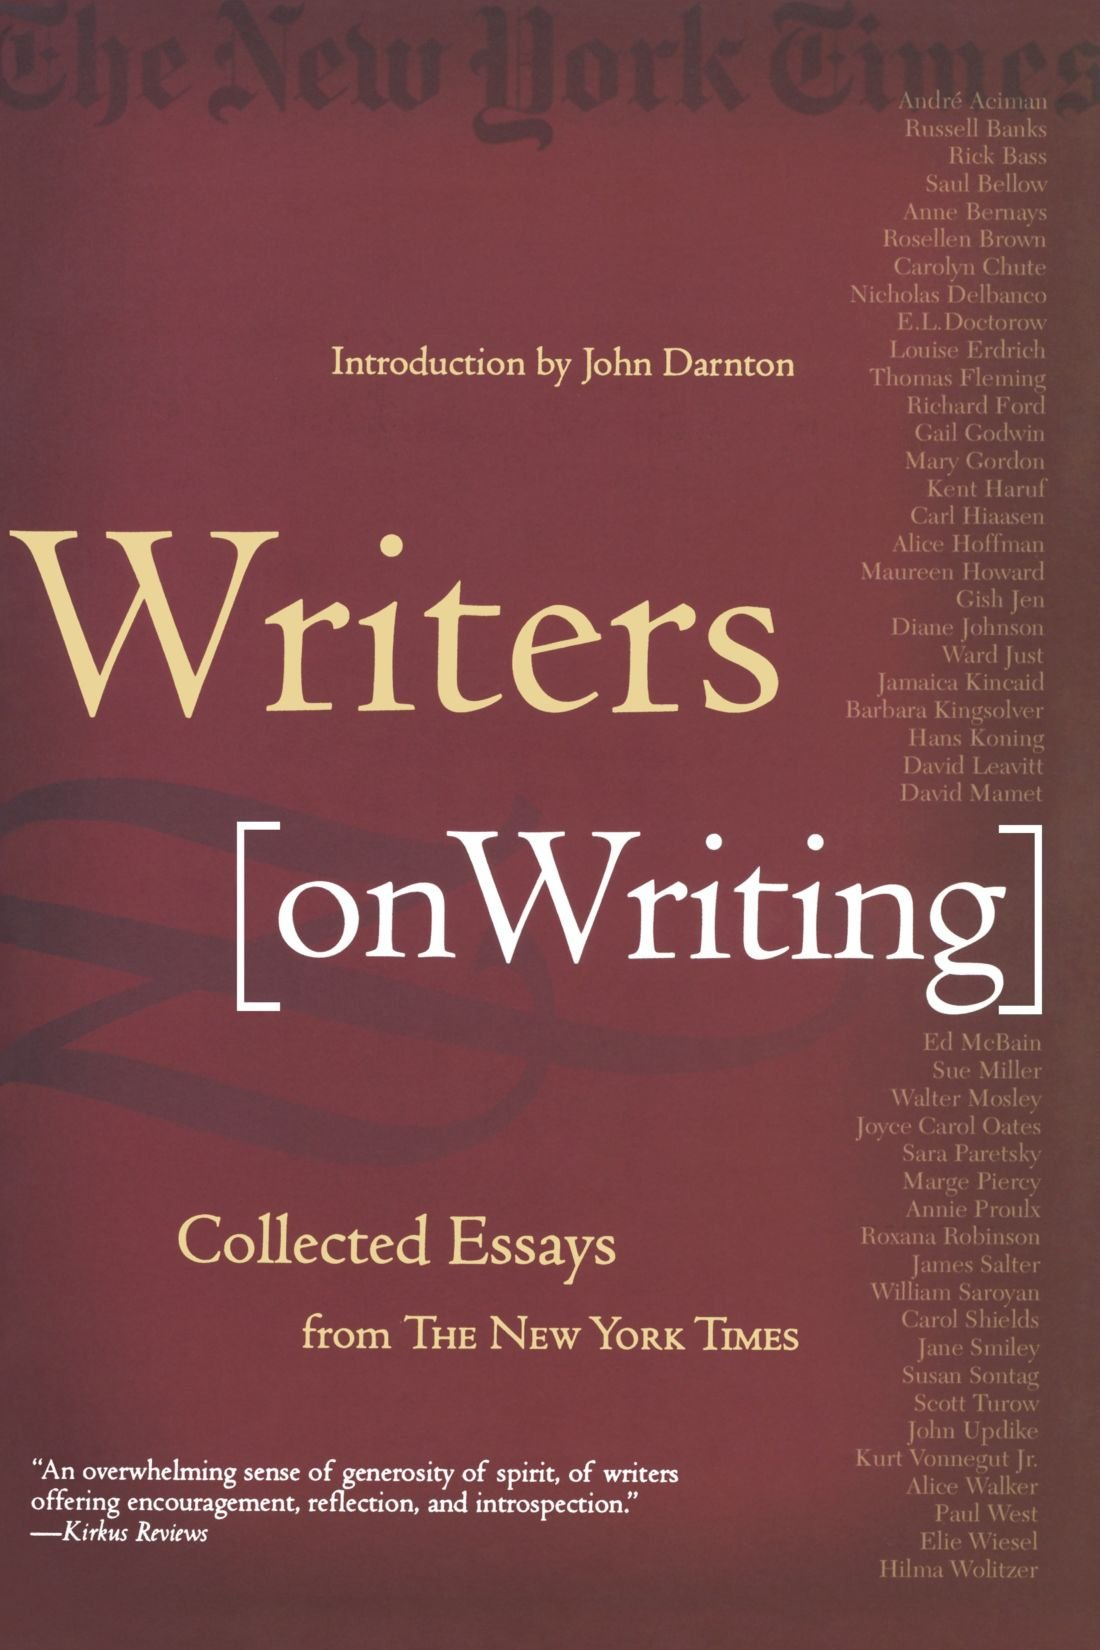 writers on writing collected essays from the new york times writers on writing collected essays from the new york times amazon co uk john darnton 9780805070859 books